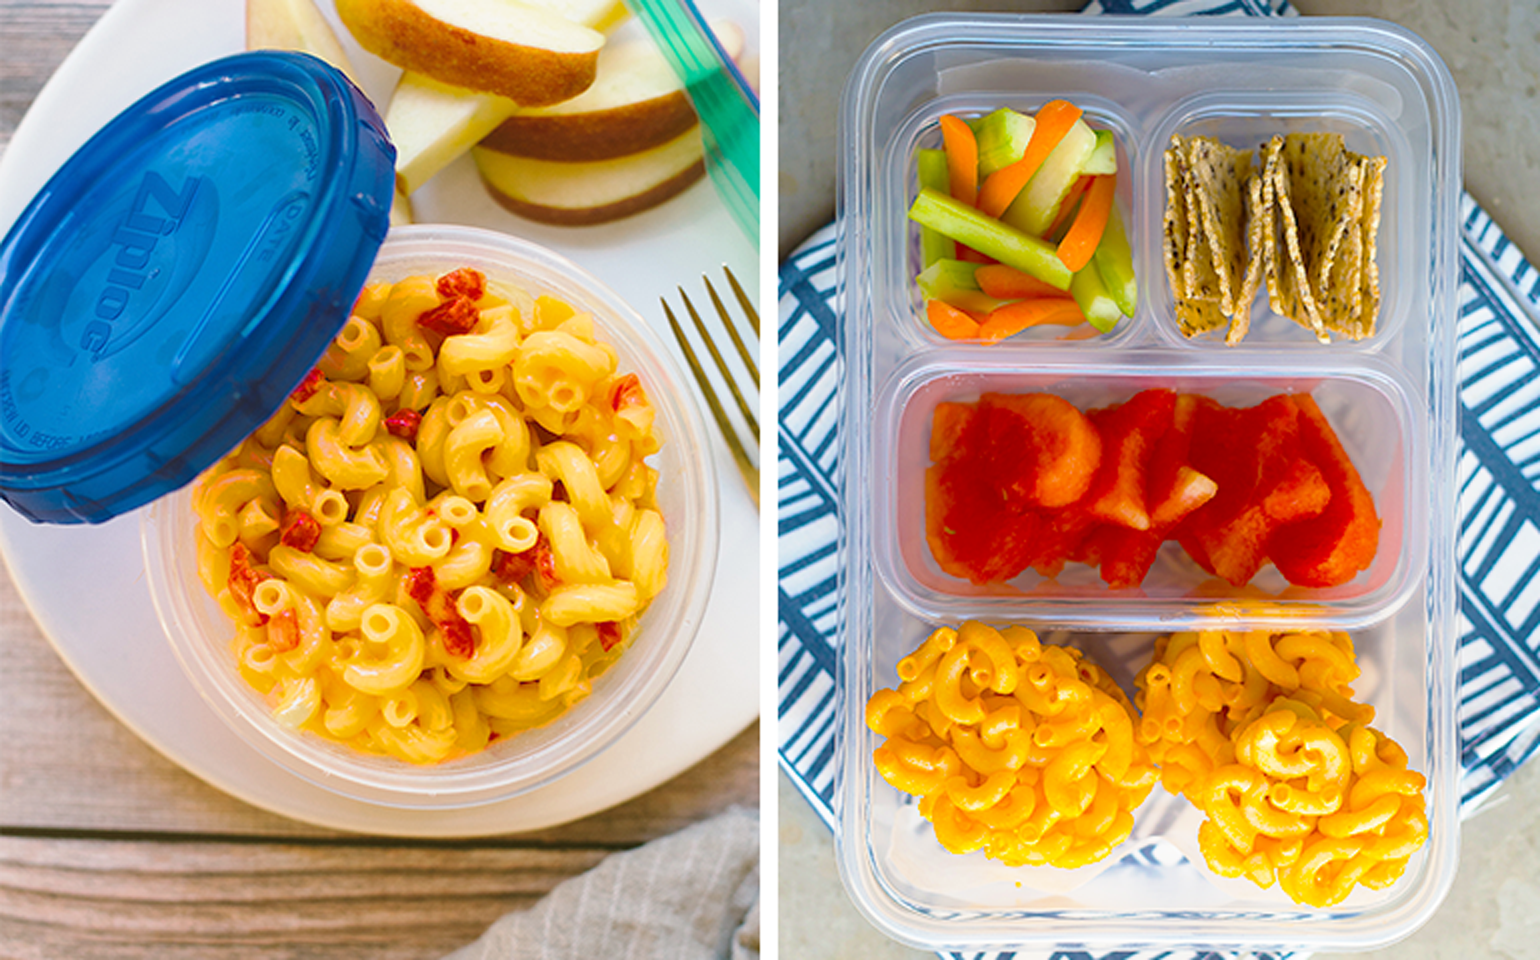 Simple Lunch Tweaks for Kids and Grownups